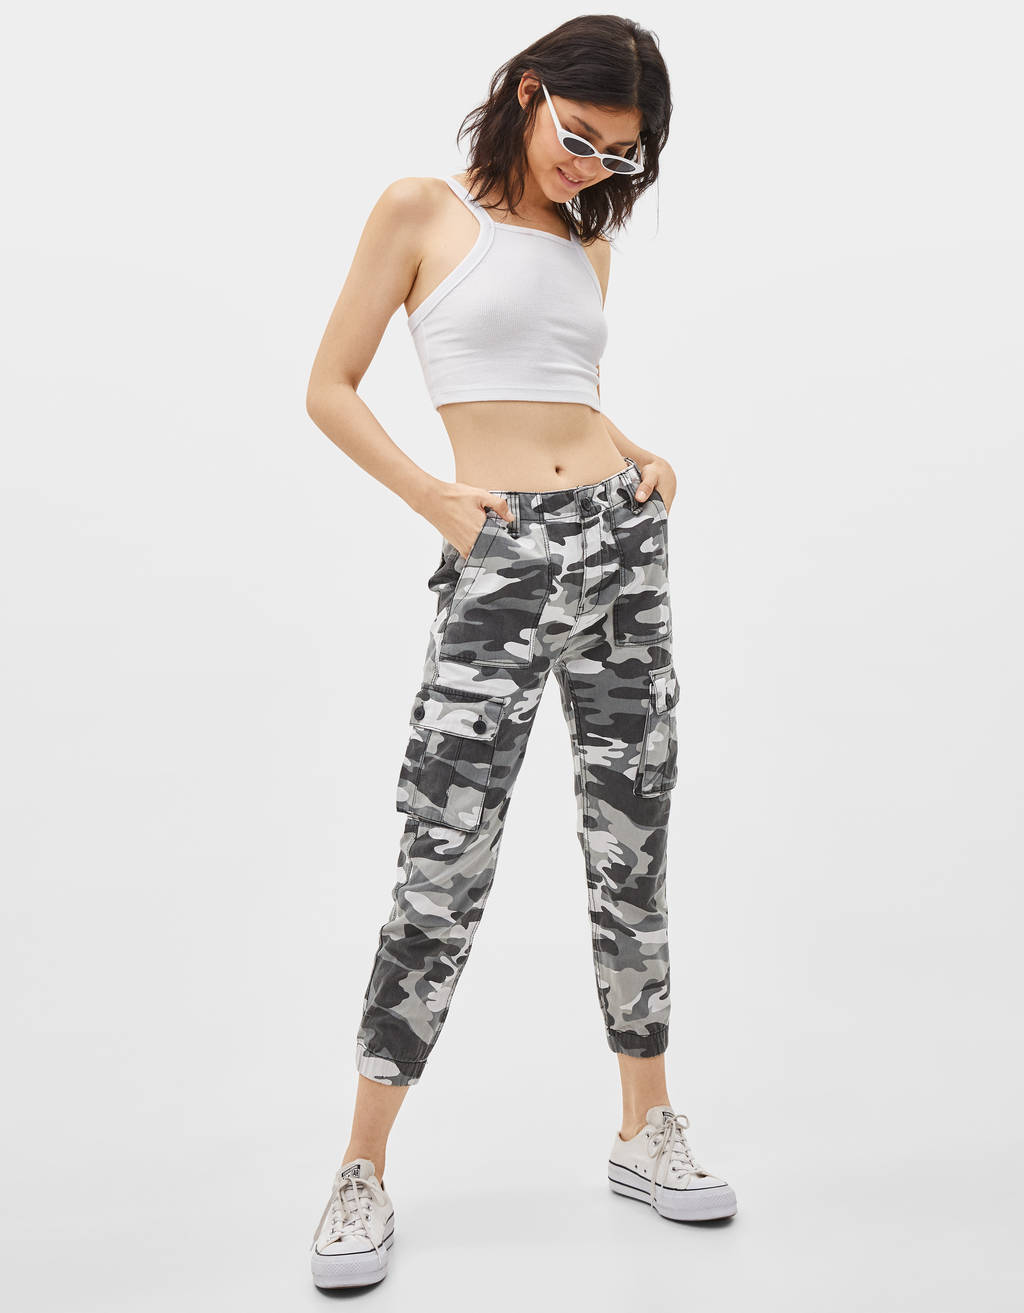 Blauwe Joggingbroek Dames.Broeken Collectie Dames Bershka Netherlands